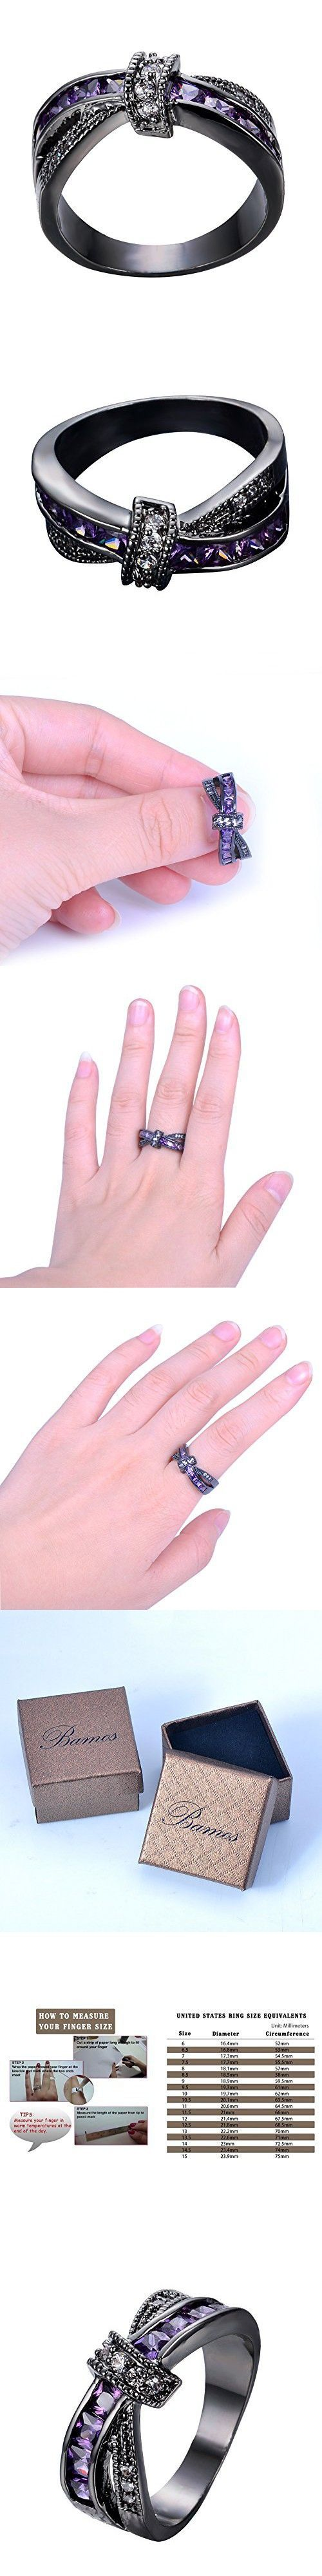 4848 best Gorgeous Rings images on Pinterest | Engagements, Rings ...